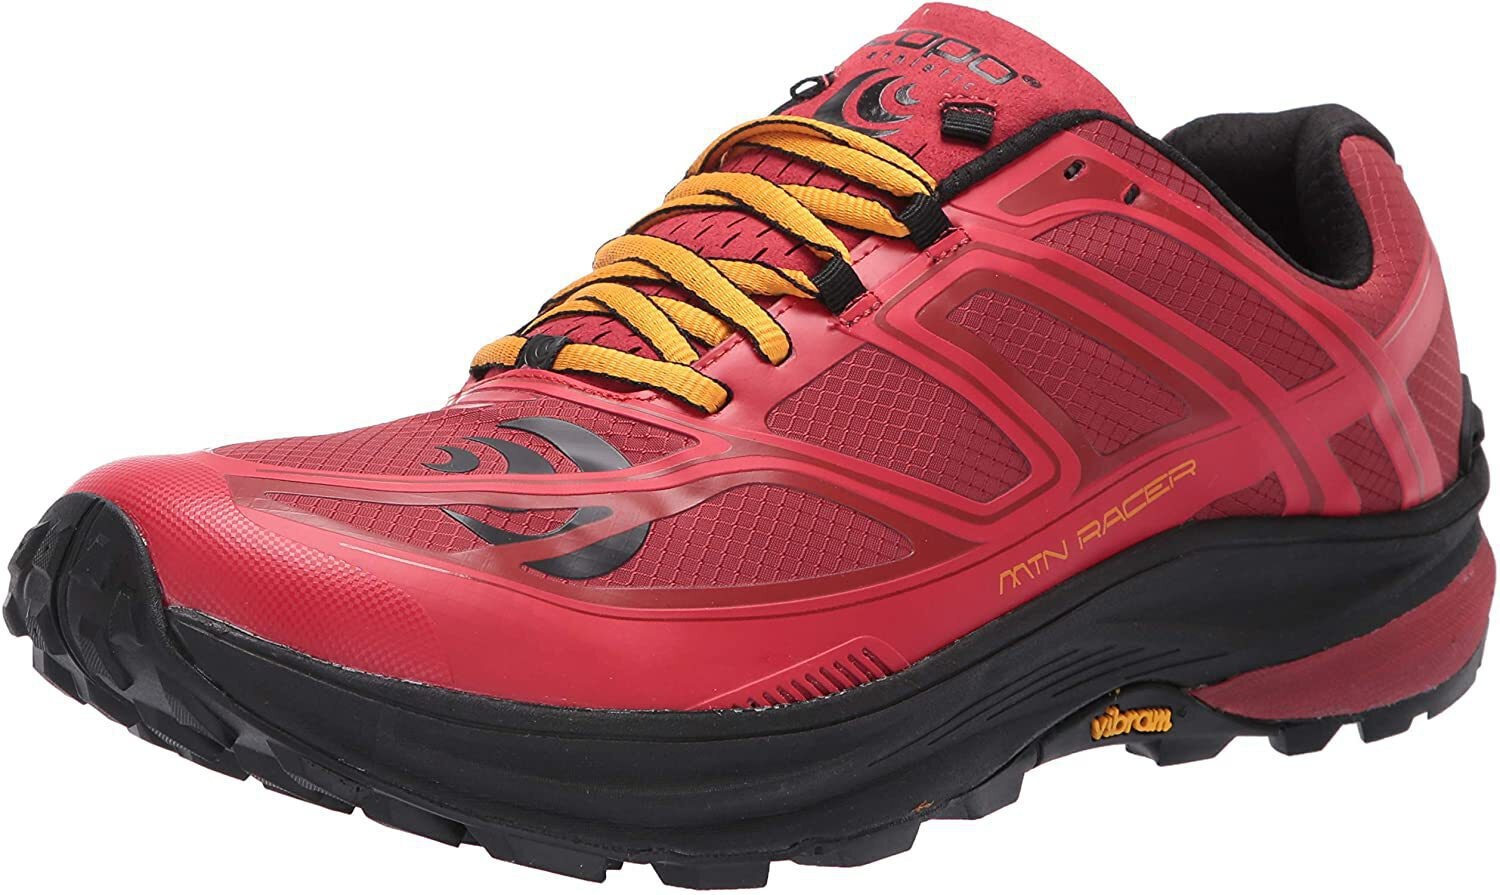 TOPO Athletic MTN-Racer Trail Running Shoes